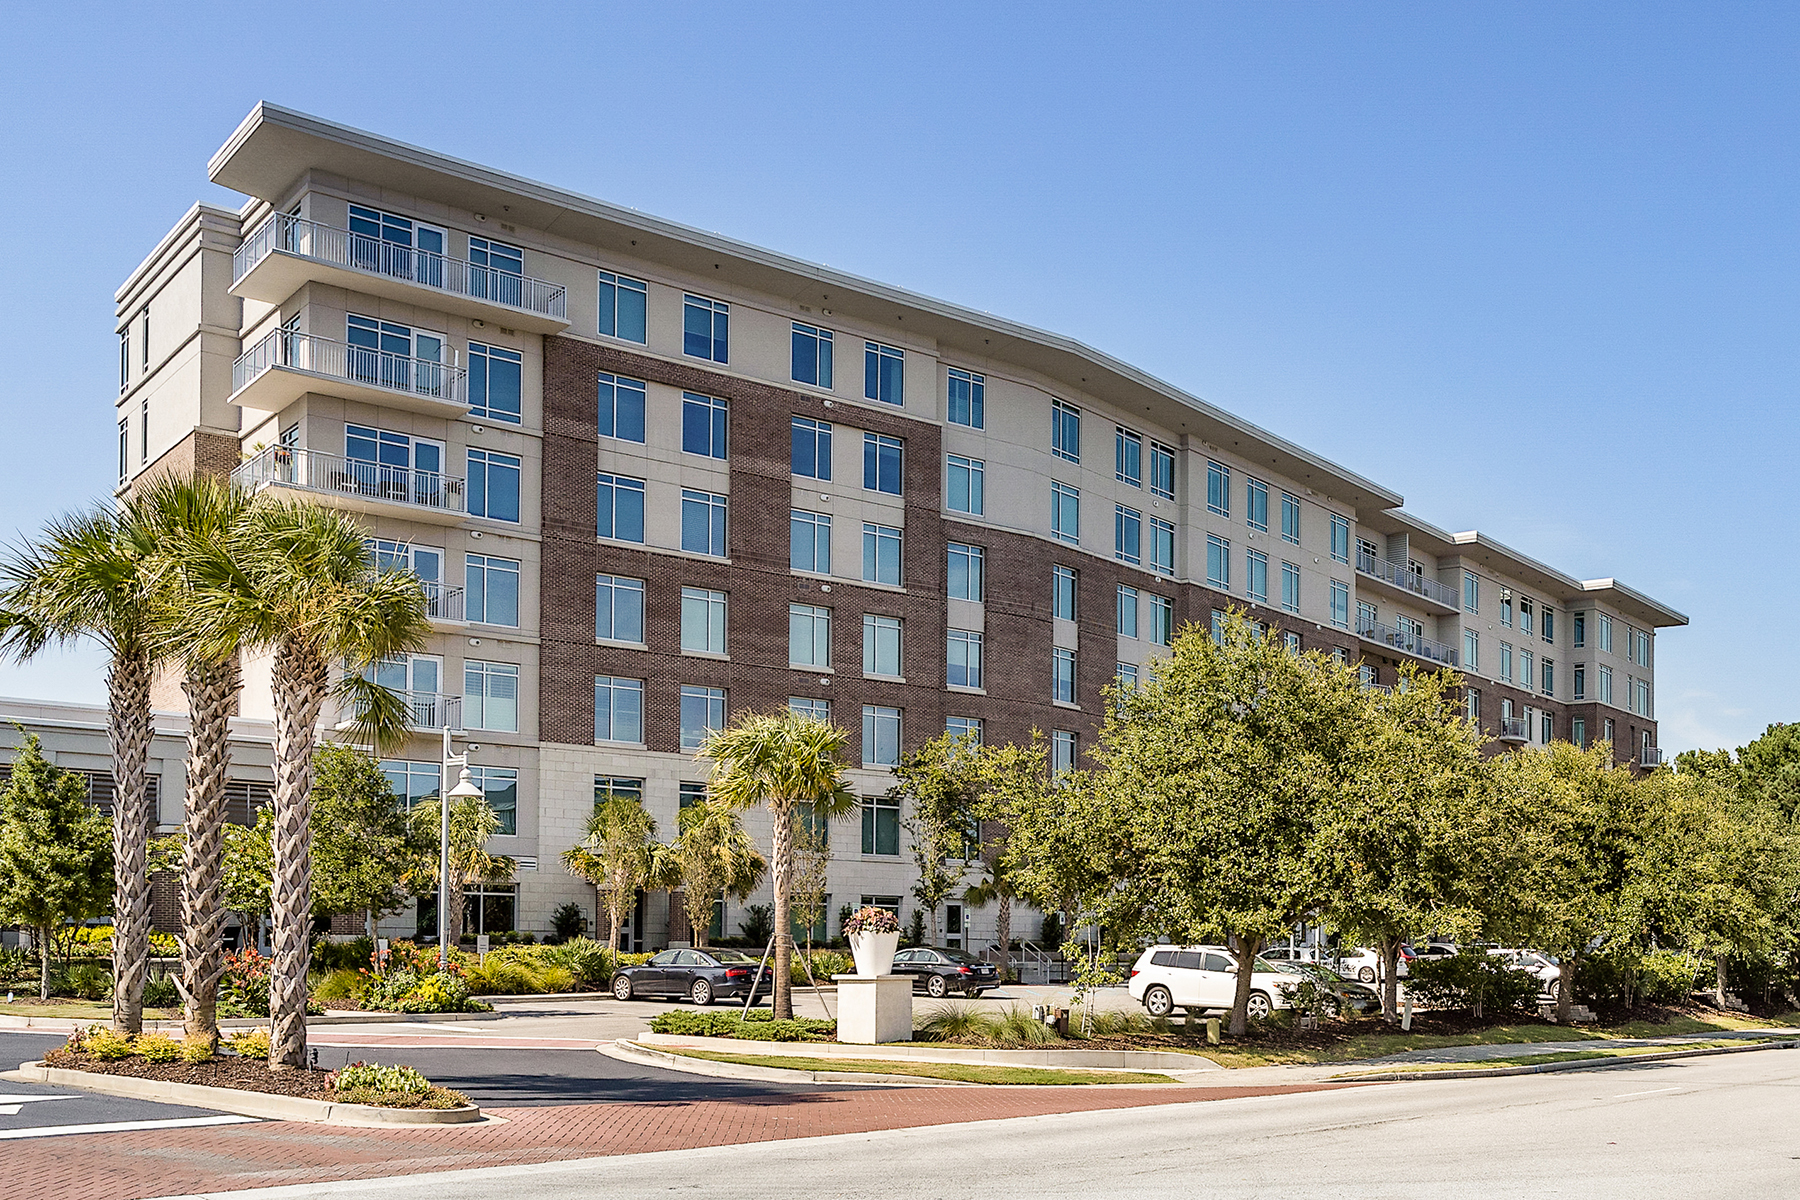 Condominiums for Sale at 155 Wingo Way, Unit 412 155 Wingo Way Unit 412 Mount Pleasant, South Carolina 29464 United States